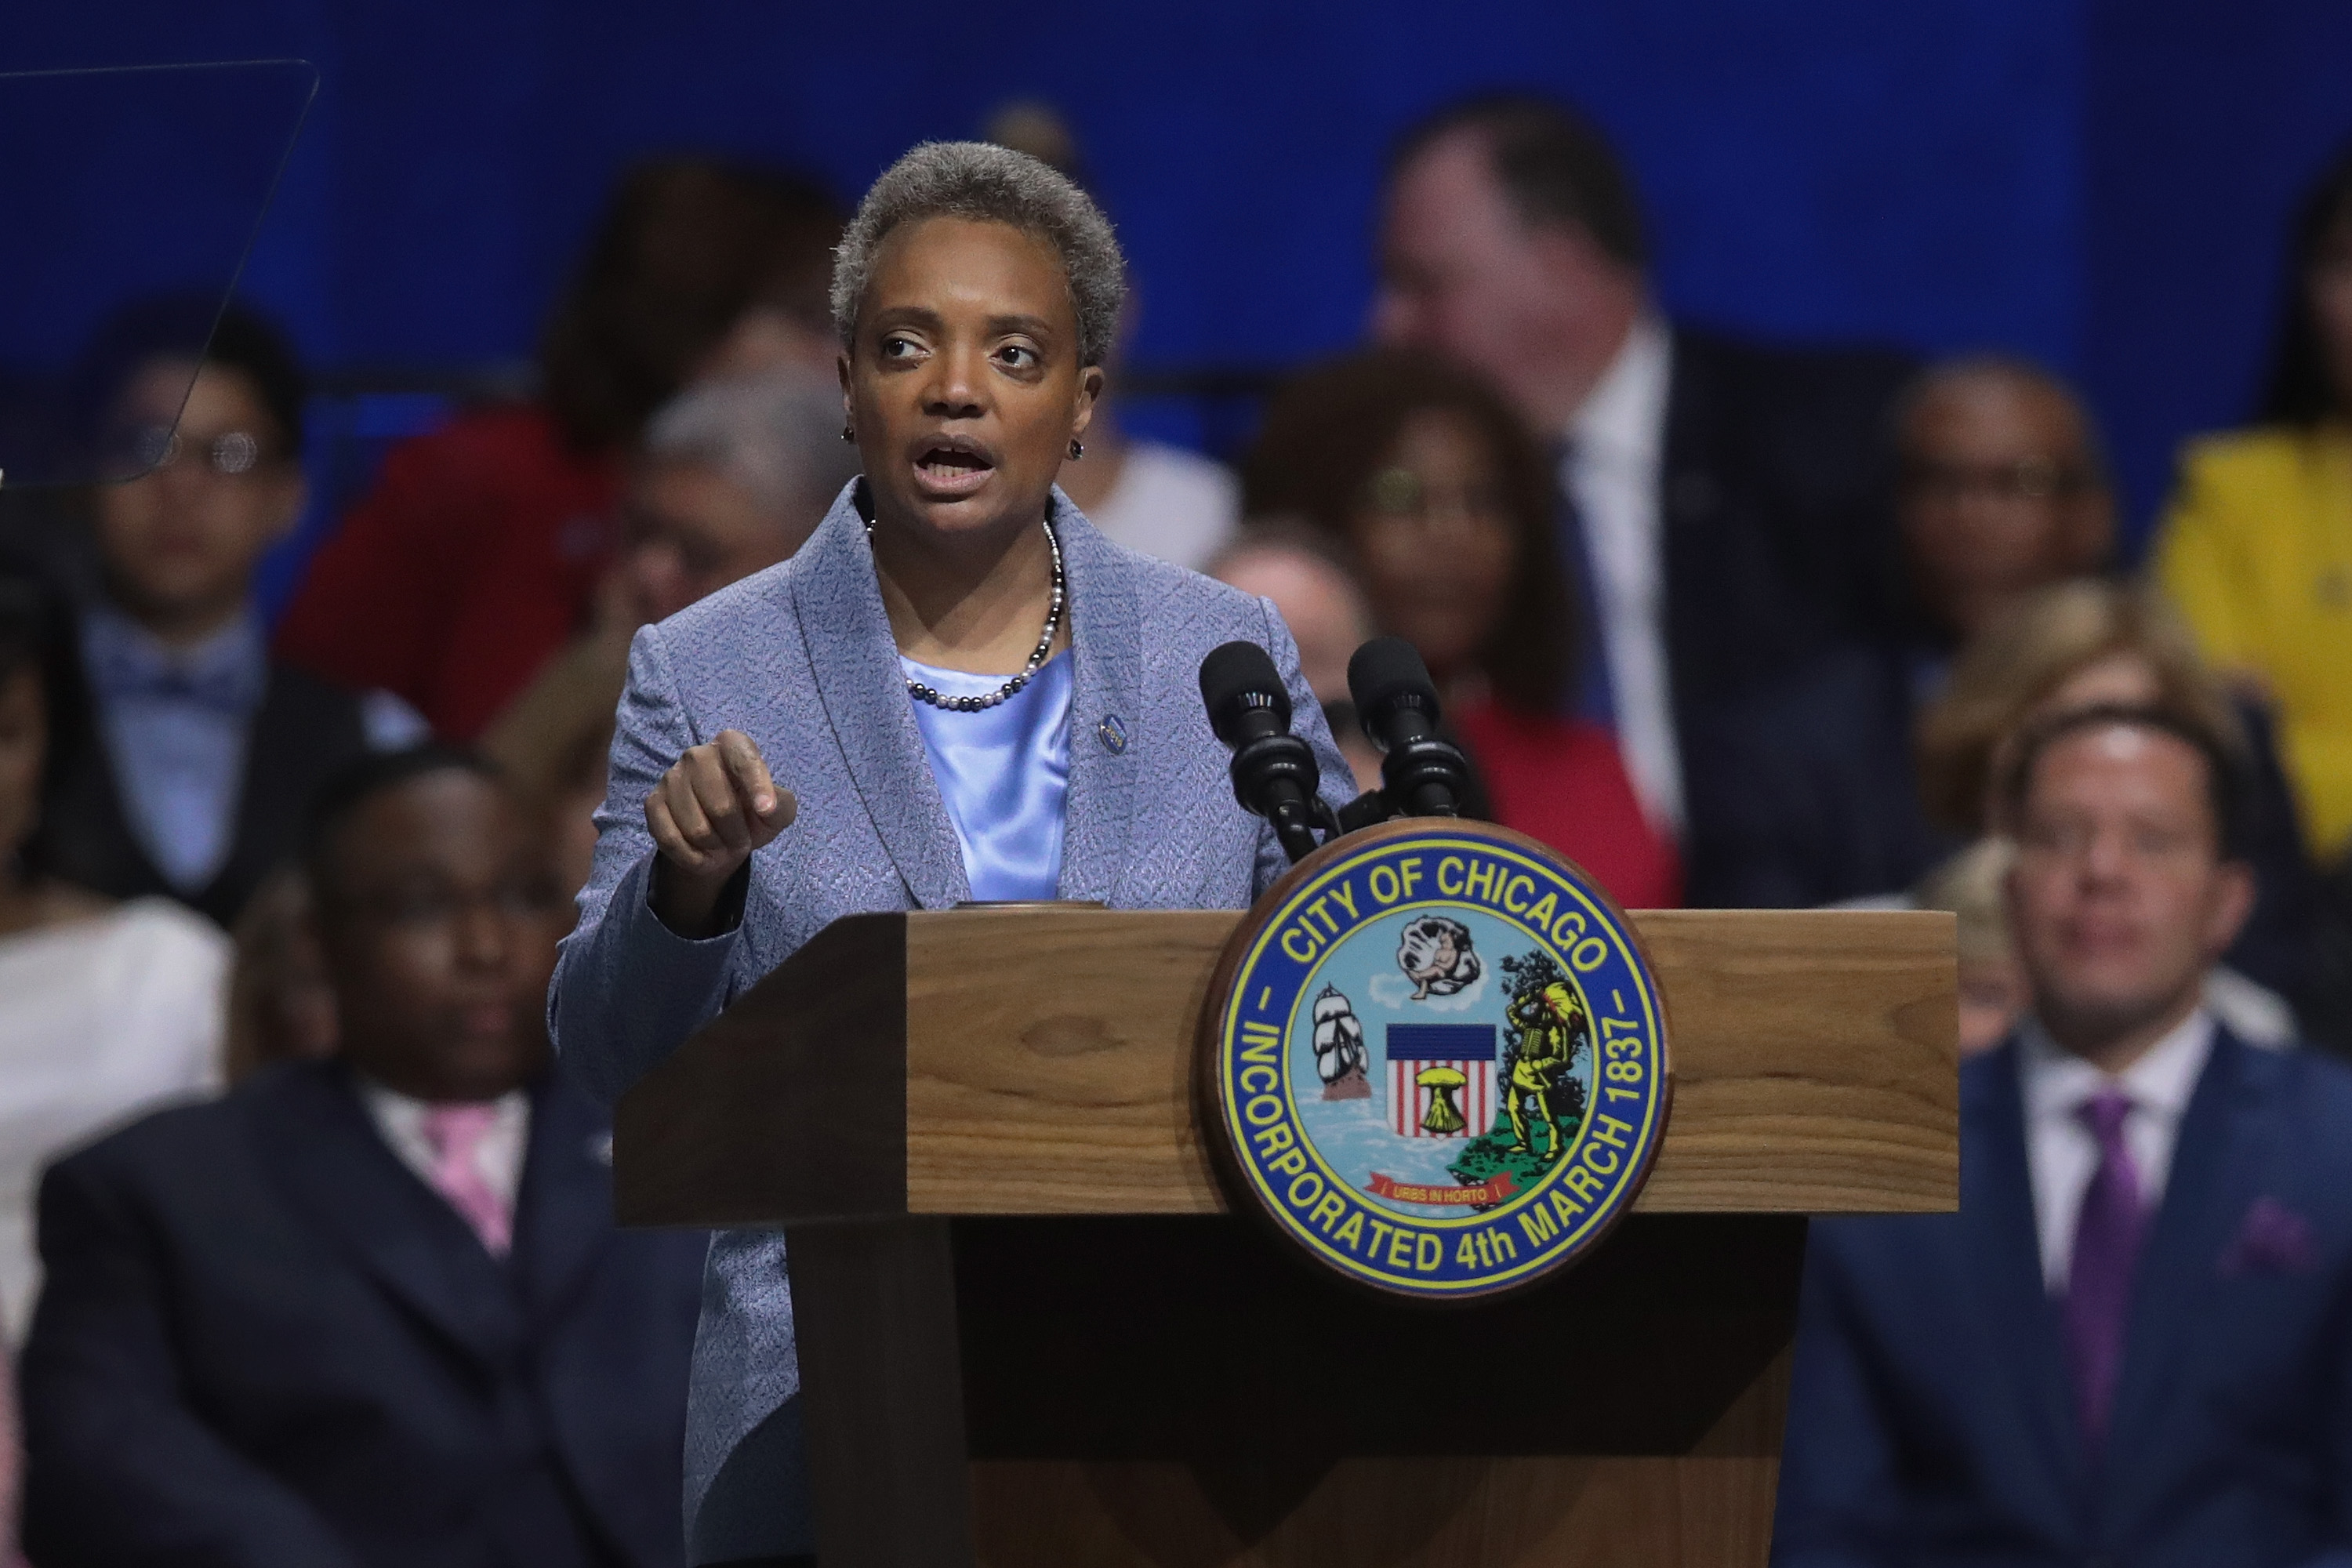 Chicago Mayor Lori Lightfoot speaks after being sworn in as Mayor of Chicago during a ceremony in Chicago, Illinois, on May 20, 2019.